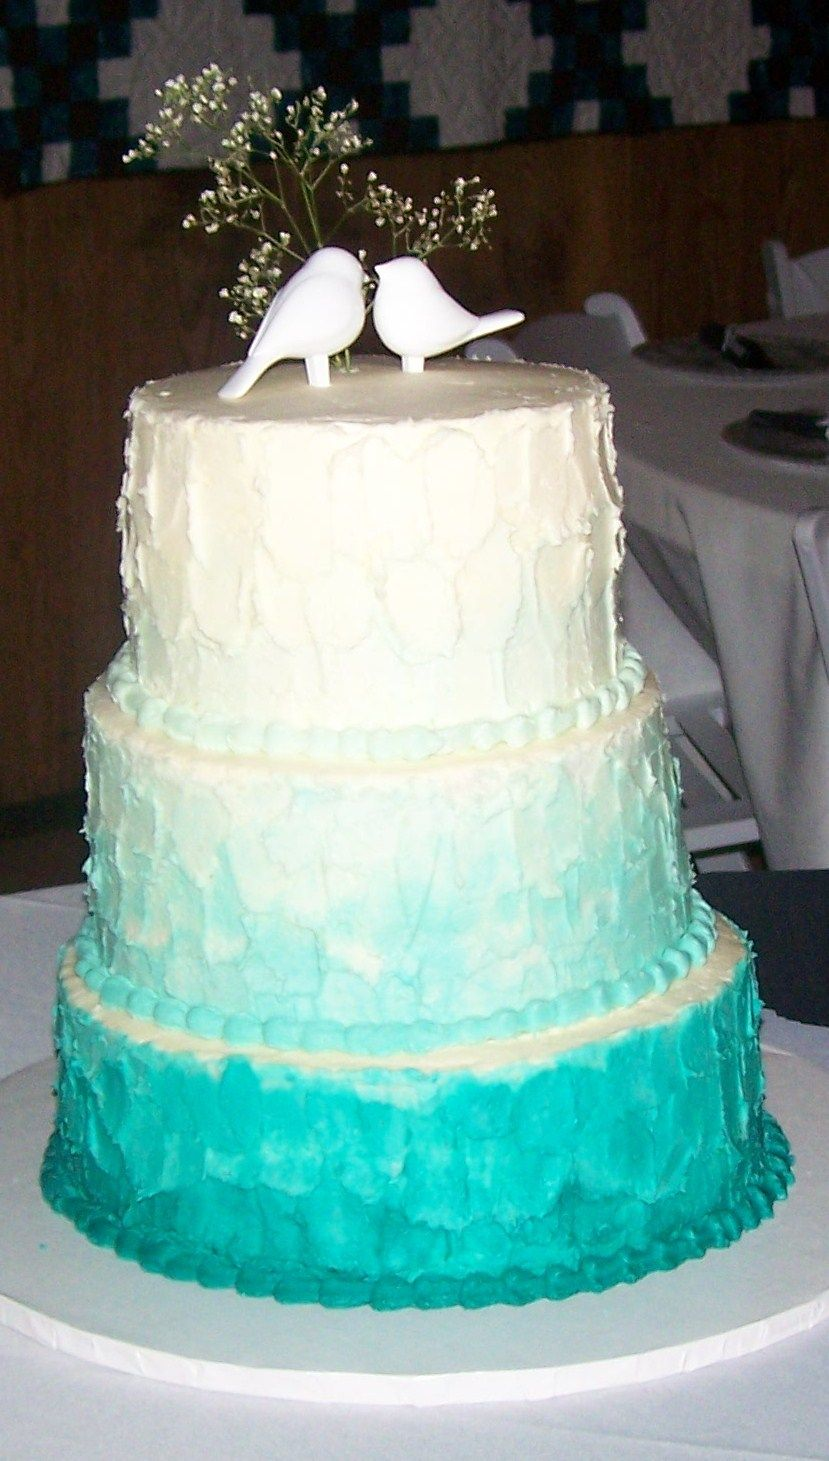 Ombre with Cake Top